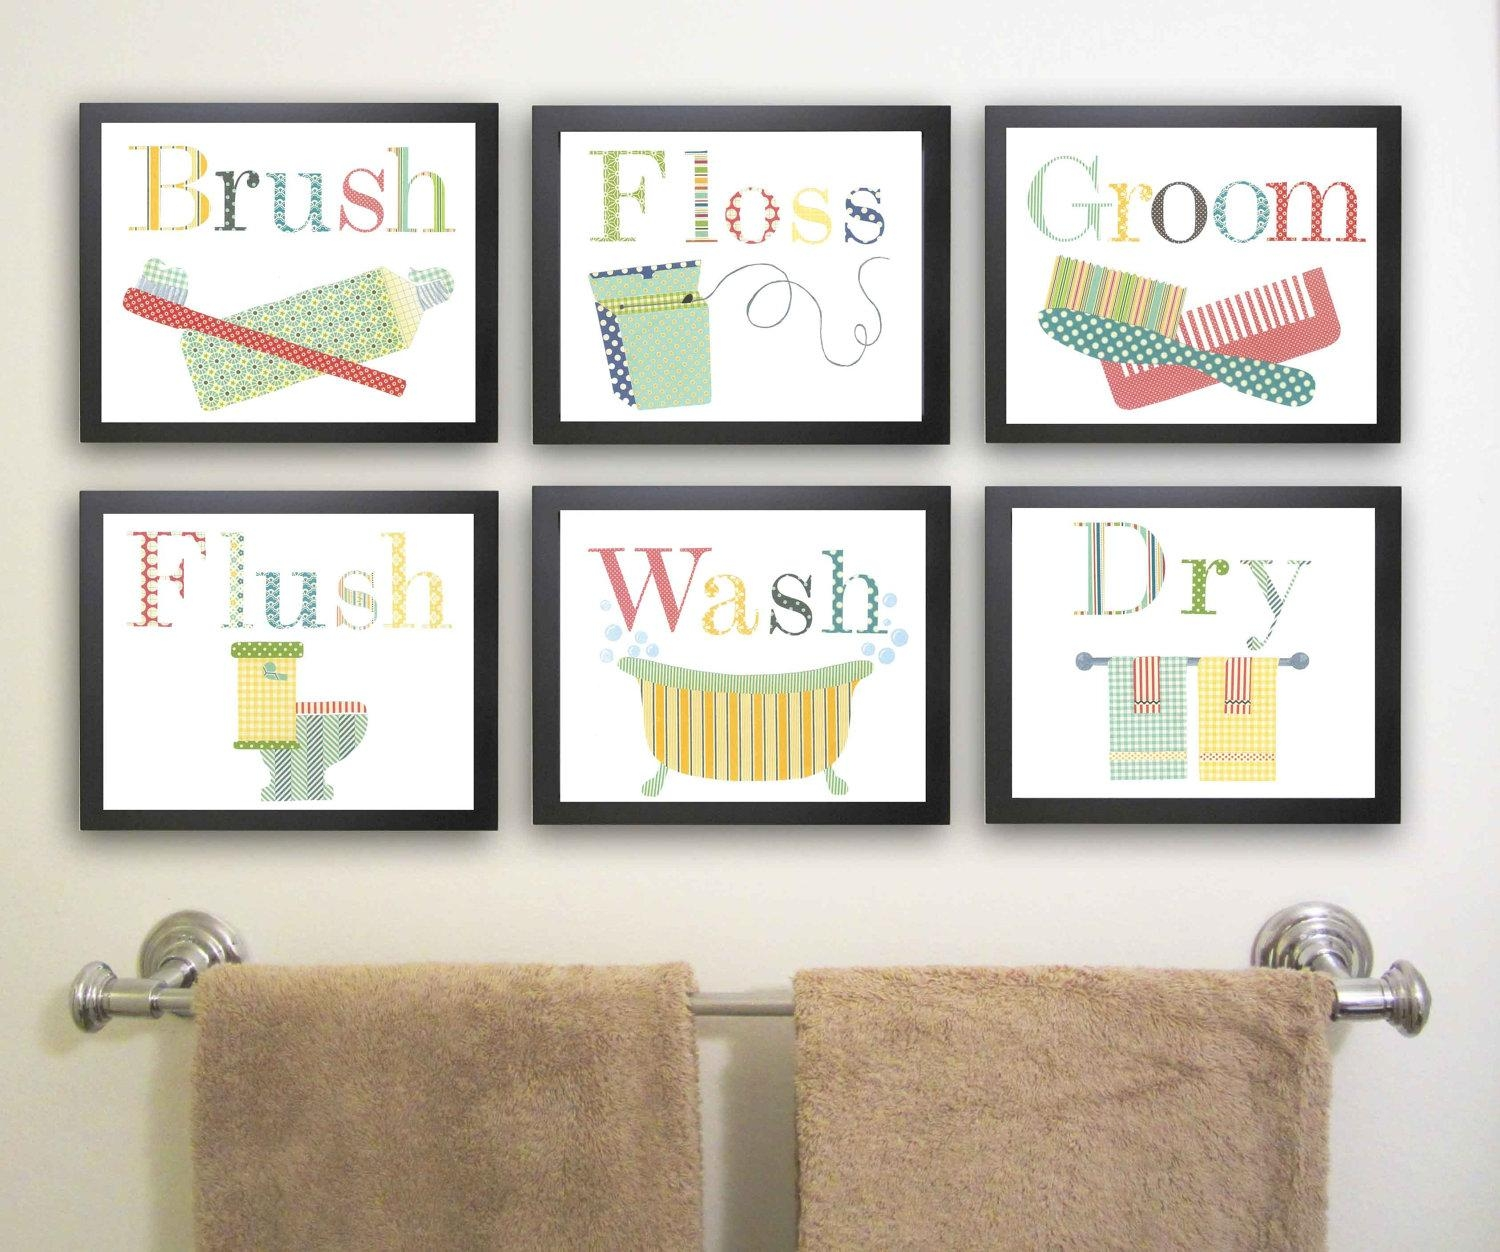 Wall Art Ideas Design : Unique Brush Art For Bathroom Wall Floss Intended For Contemporary Bathroom Wall Art (View 6 of 20)